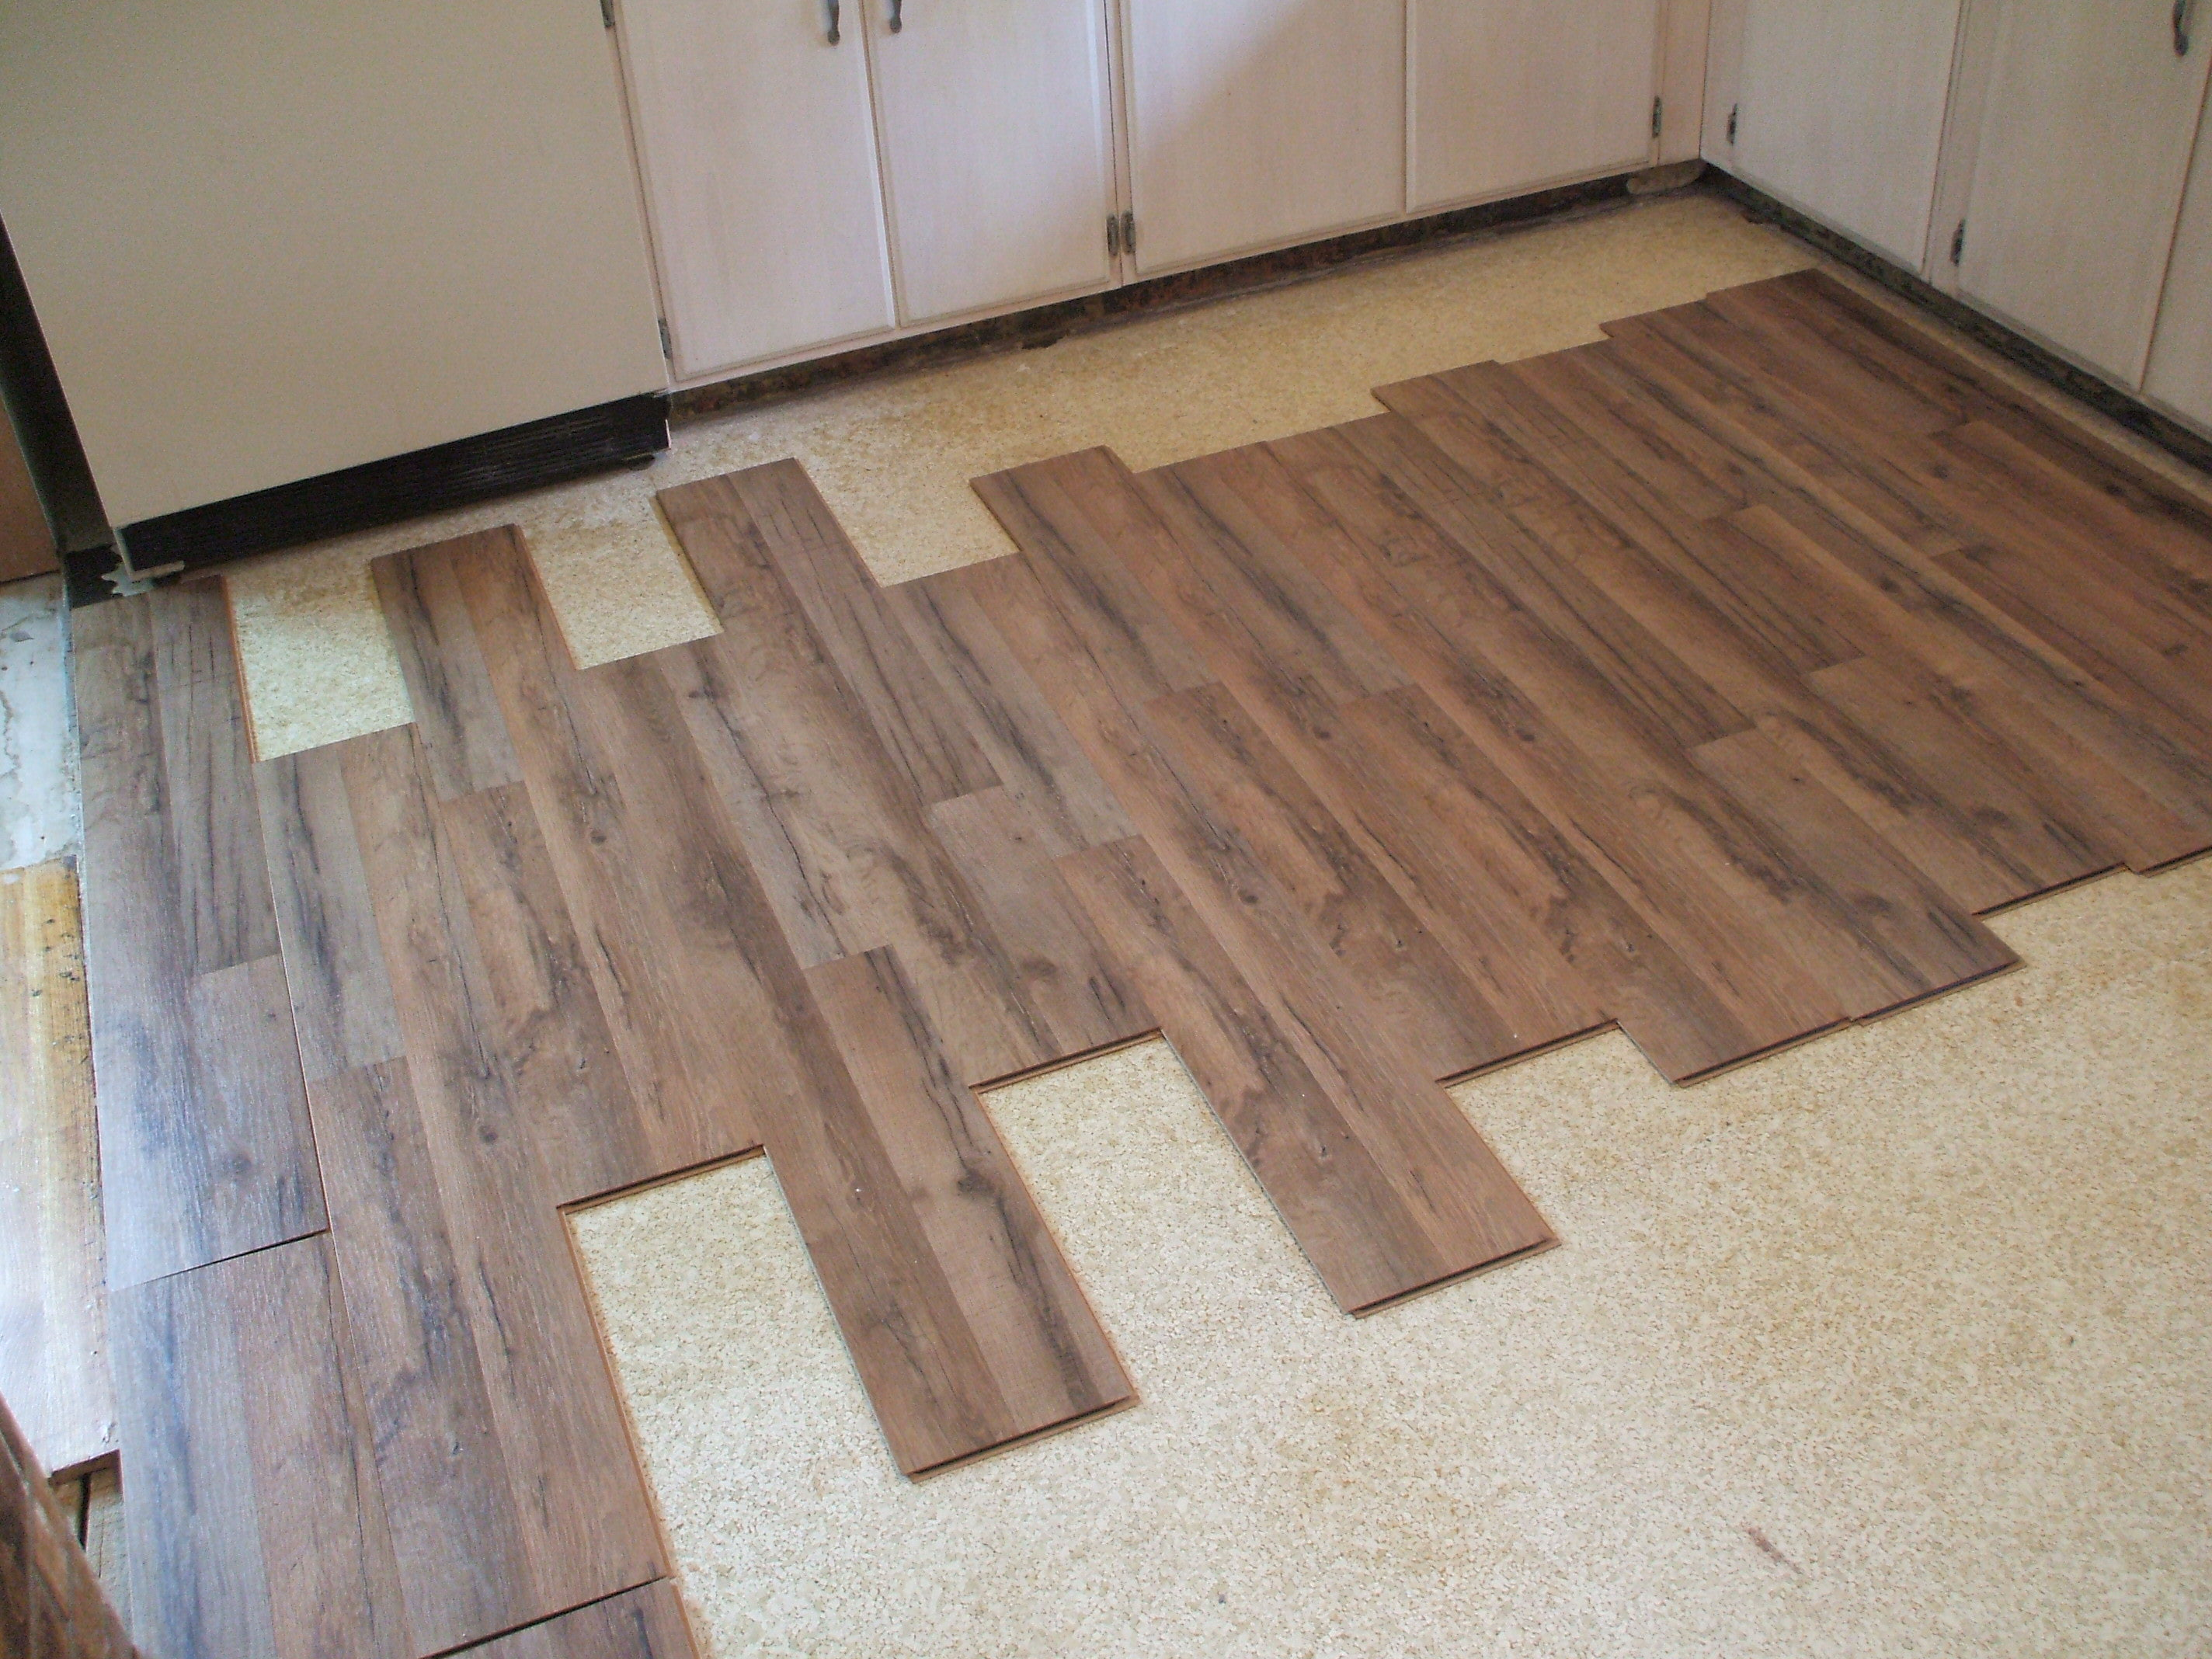 Tile Flooring Installation choosing grout and mortar Flooring Options For Your Rental Home Which Is Best